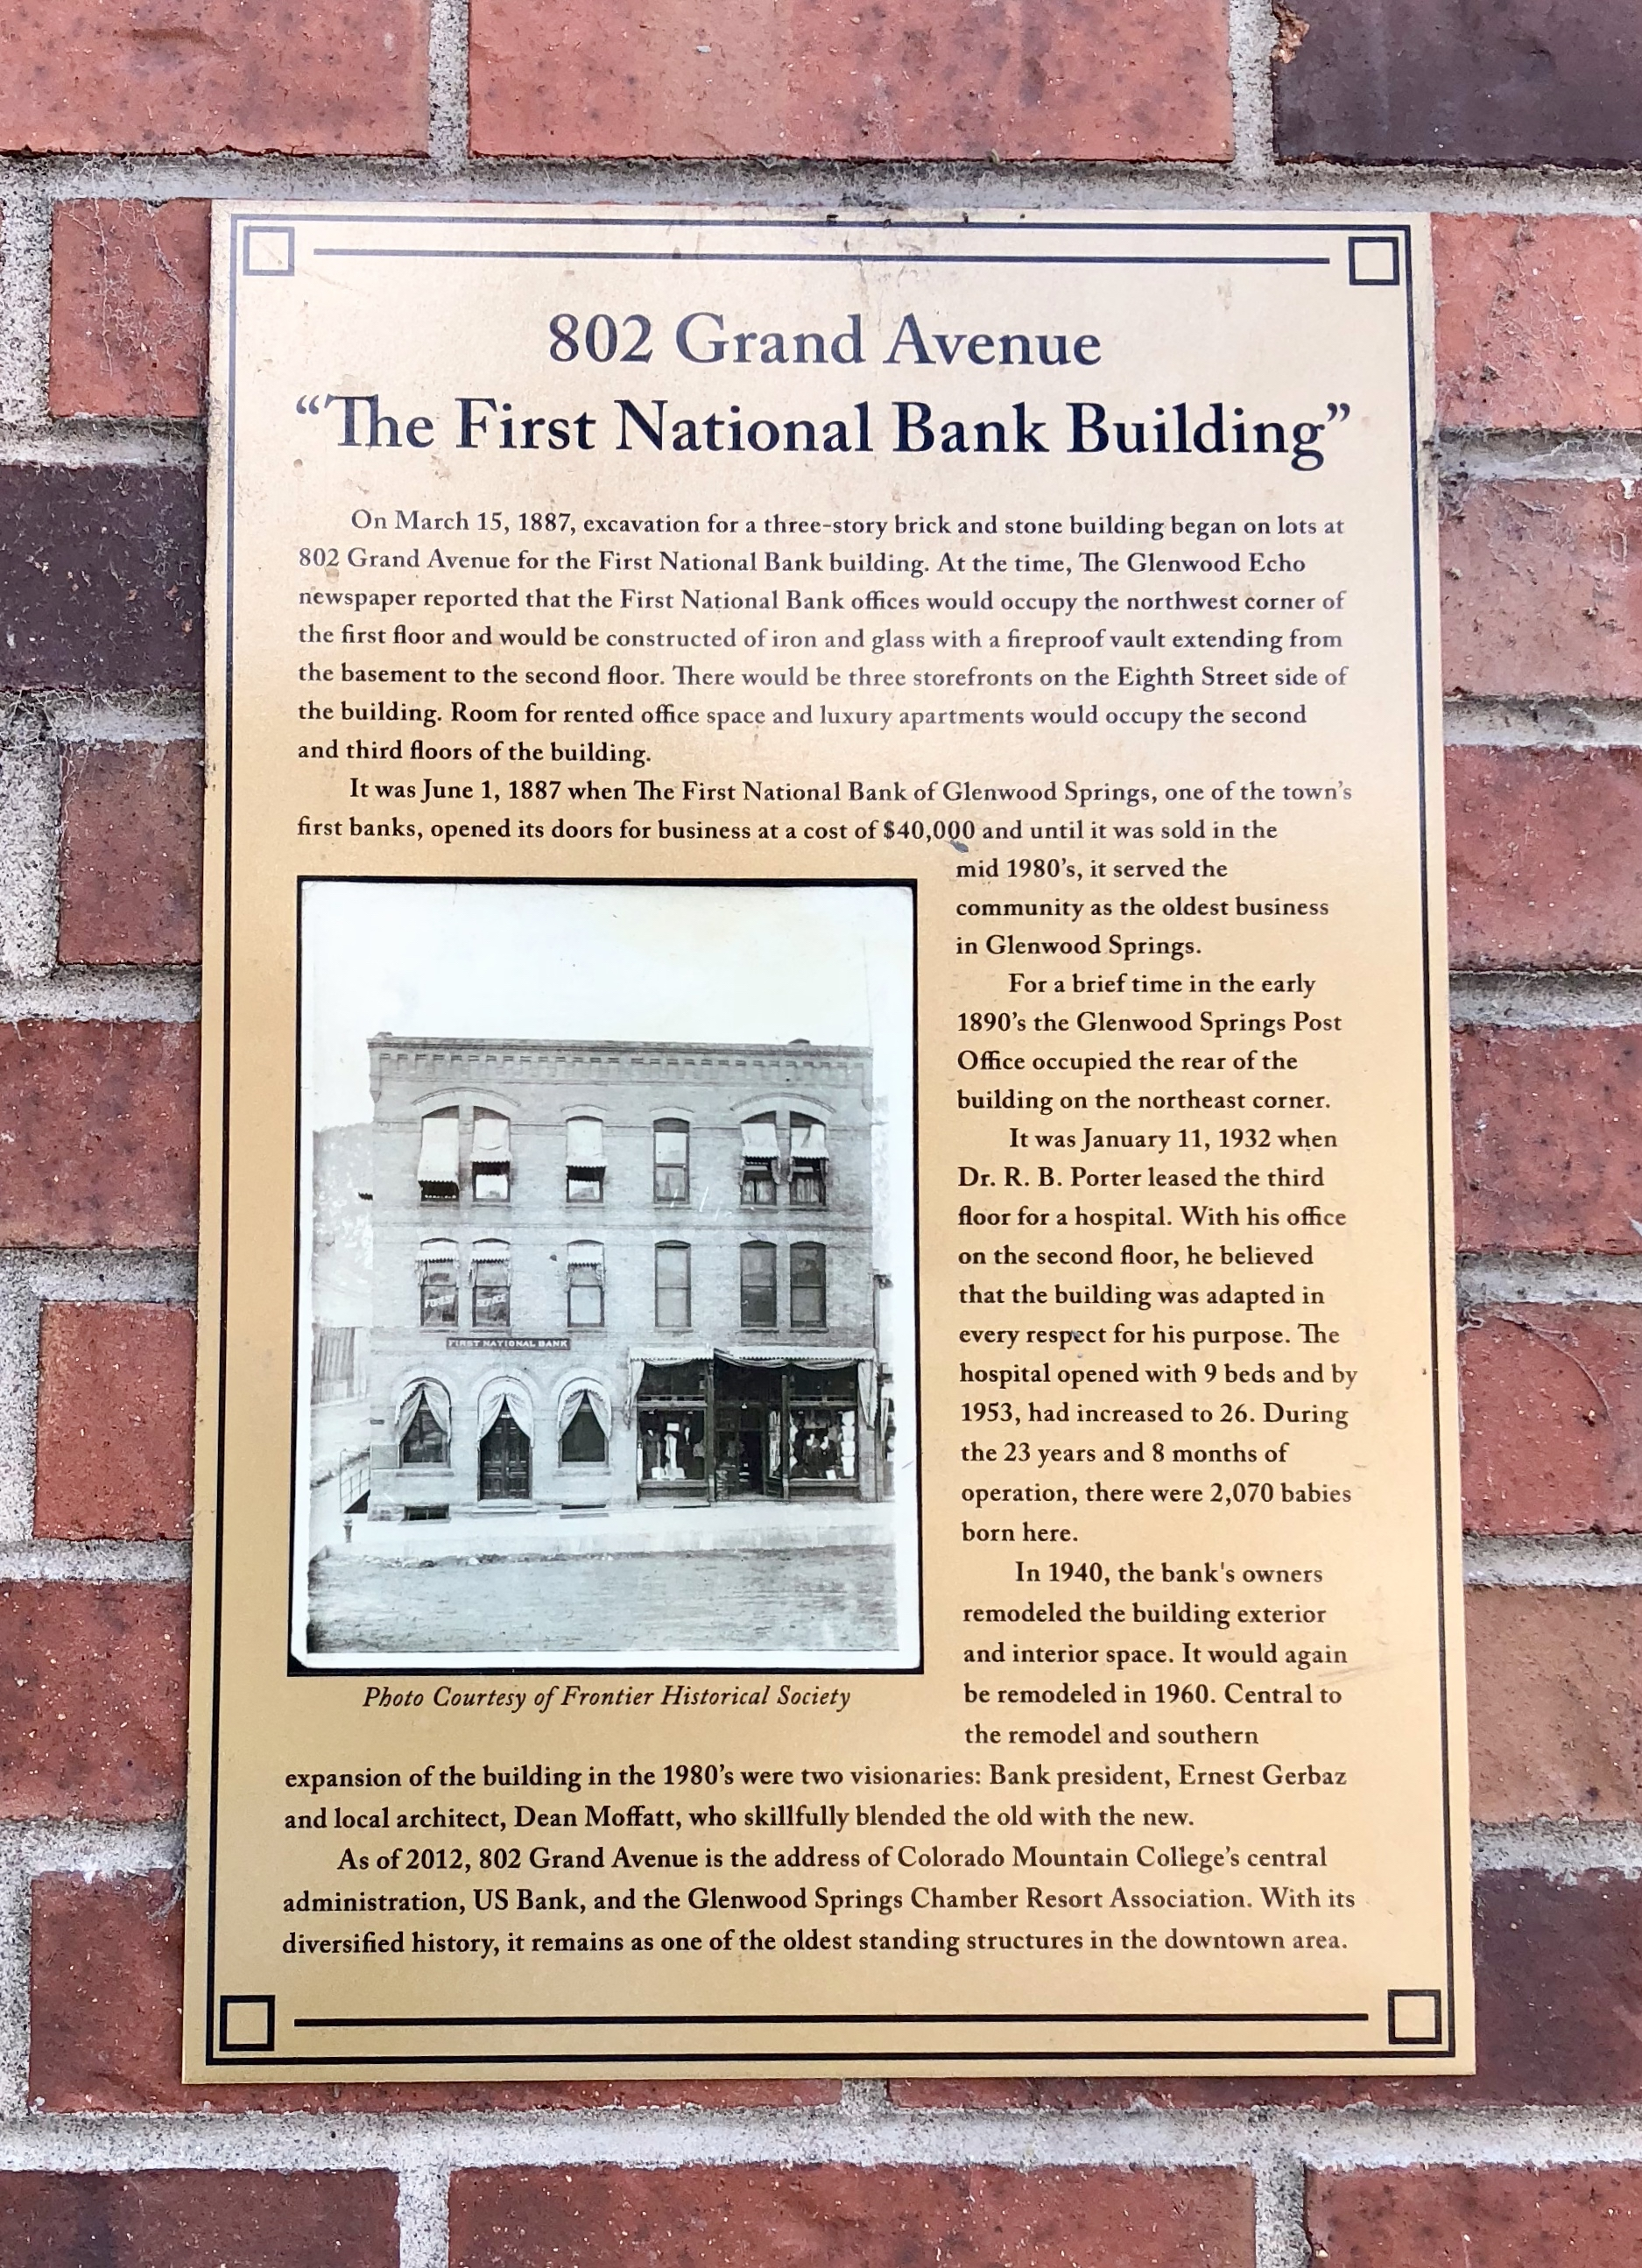 """The First National Bank Building"" Marker"